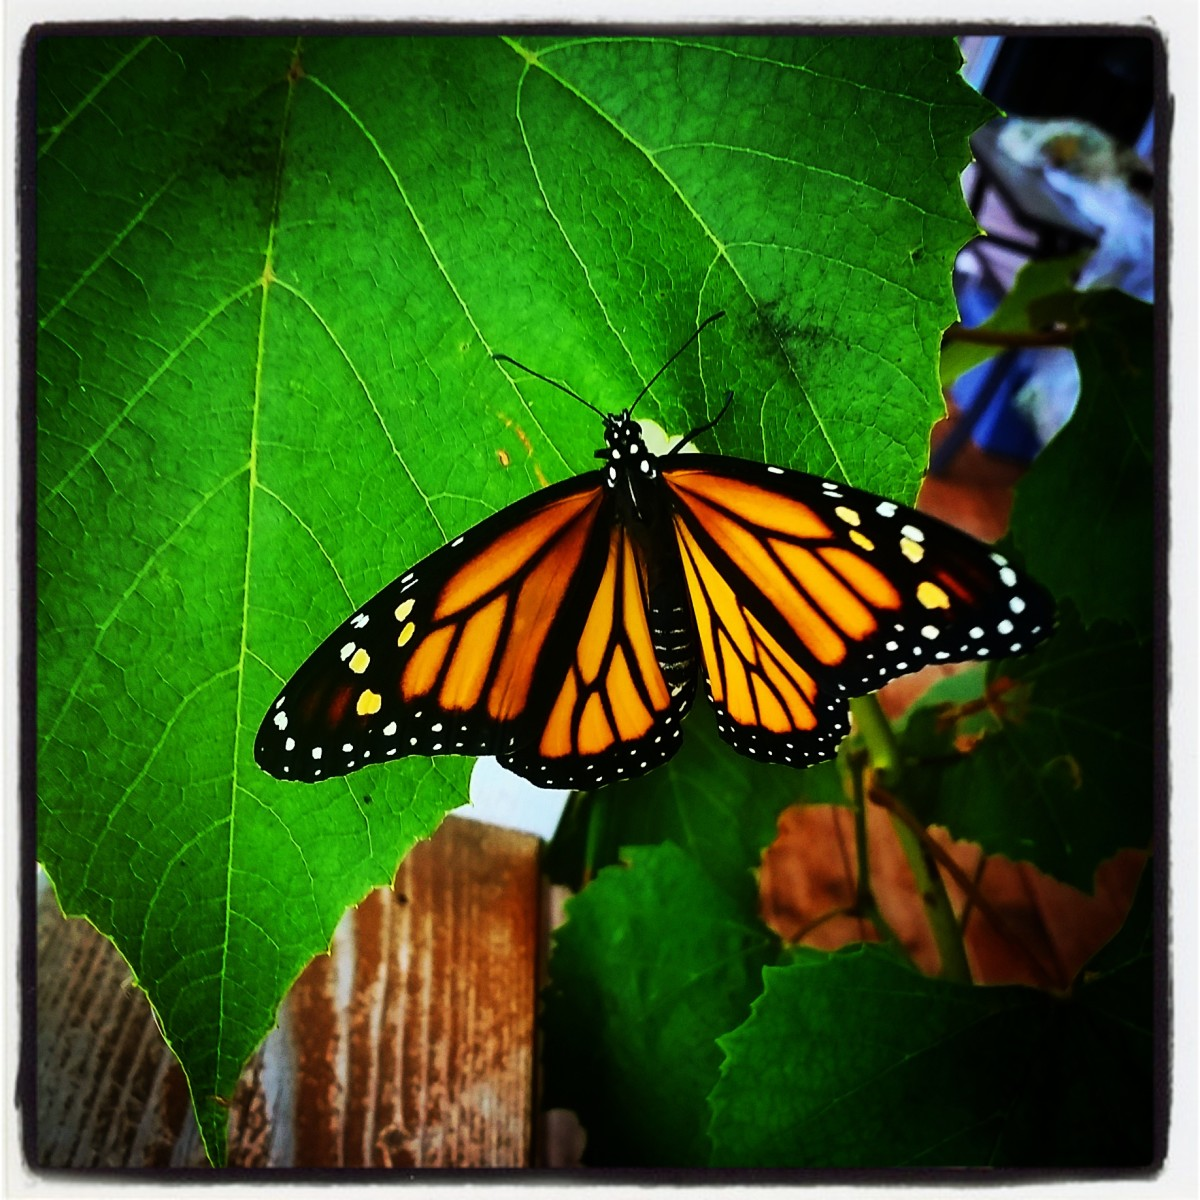 The Monarch Butterfly—An Illustration of Transformation—The Chrysalis Phase